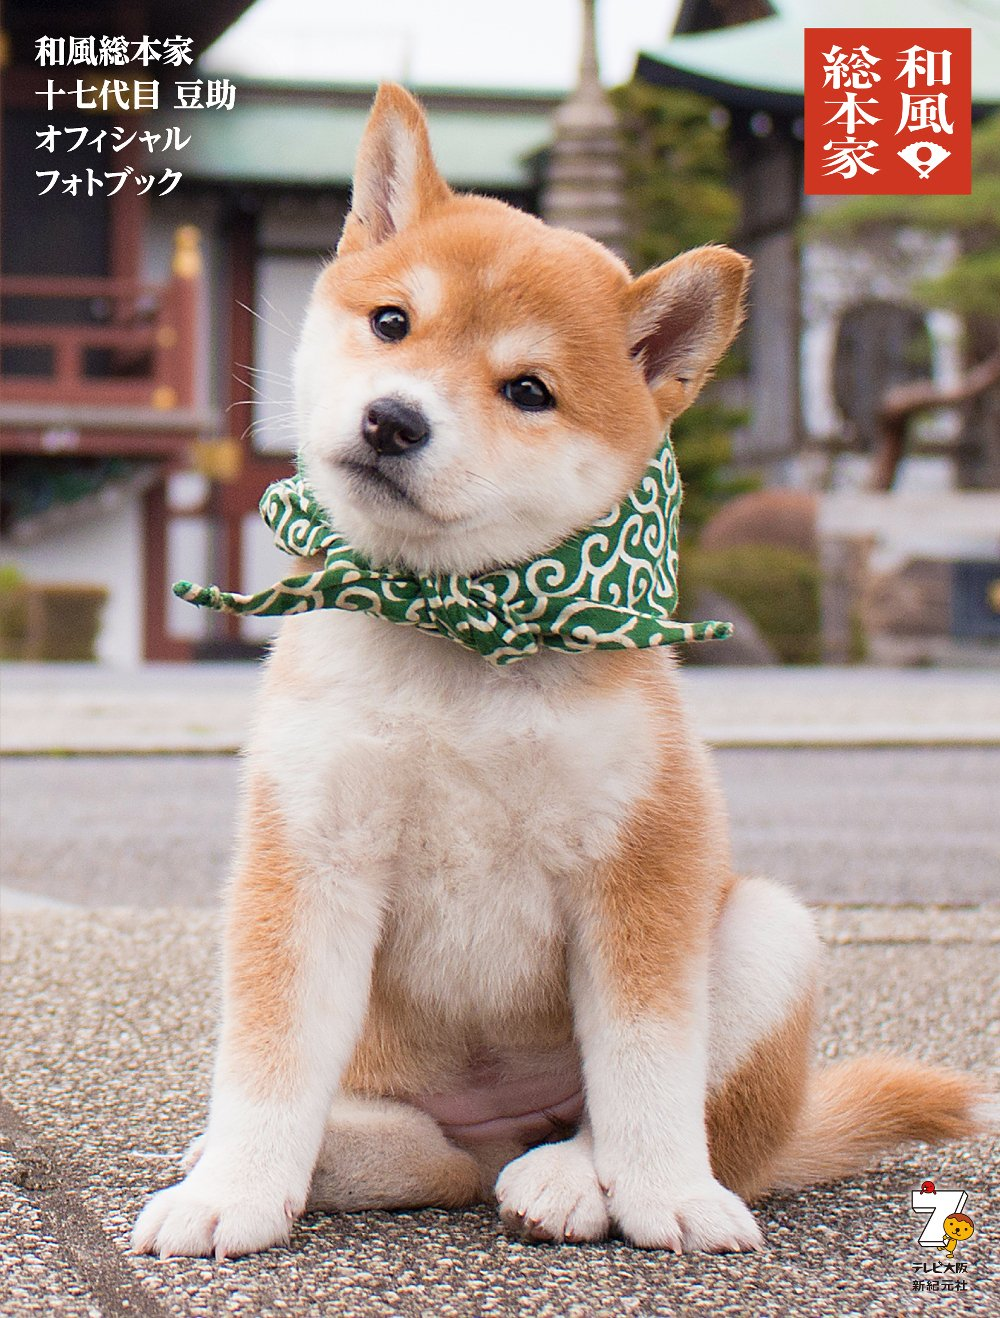 Images Of 和風総本家 Japaneseclass Jp